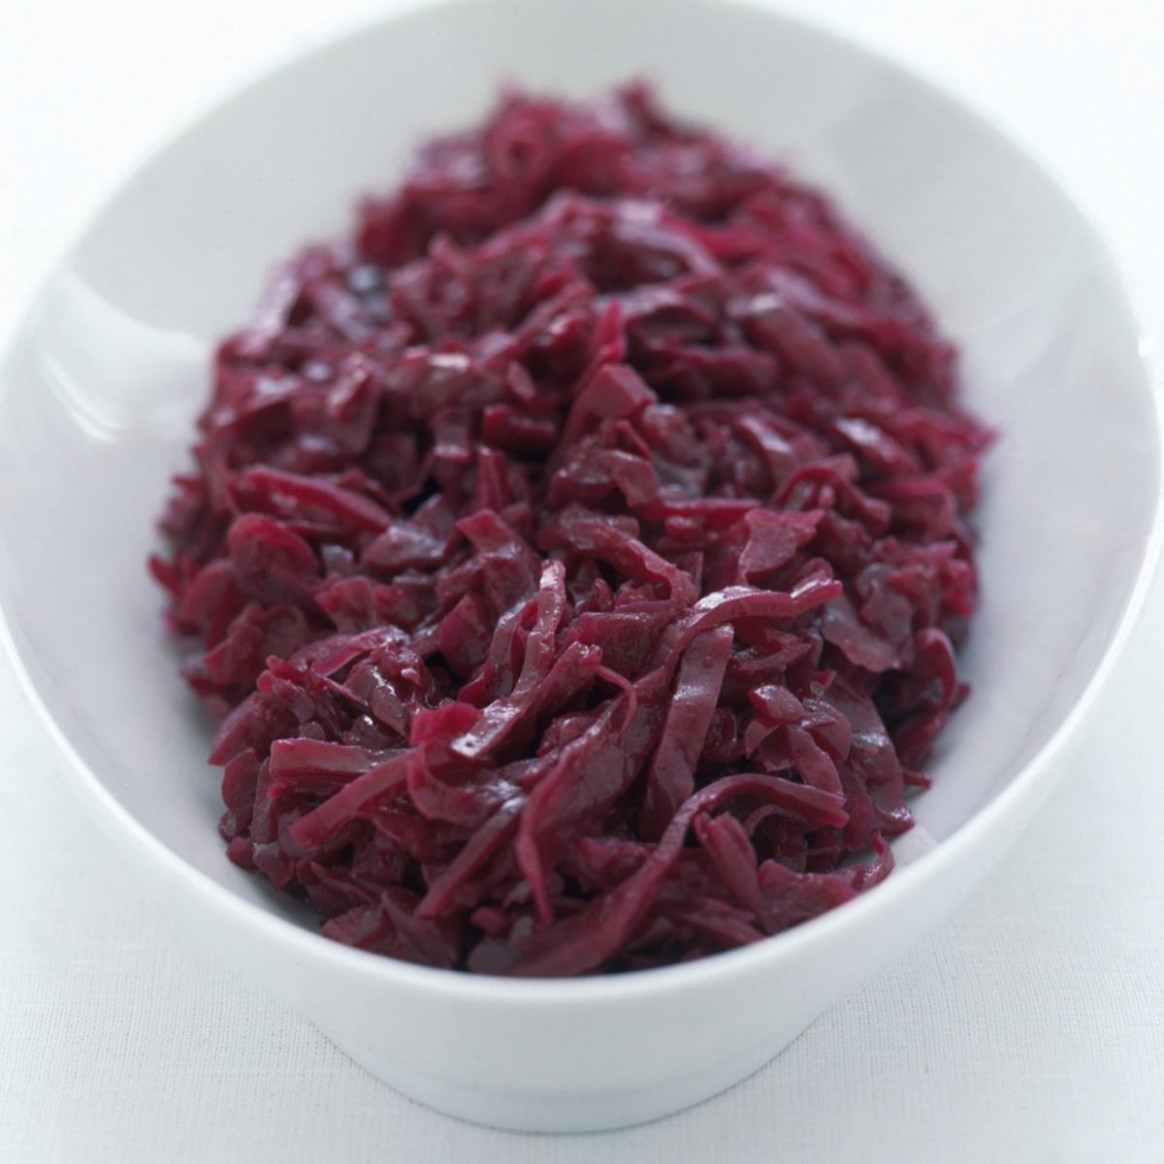 Traditional Braised Red Cabbage With Apples | Recipes …